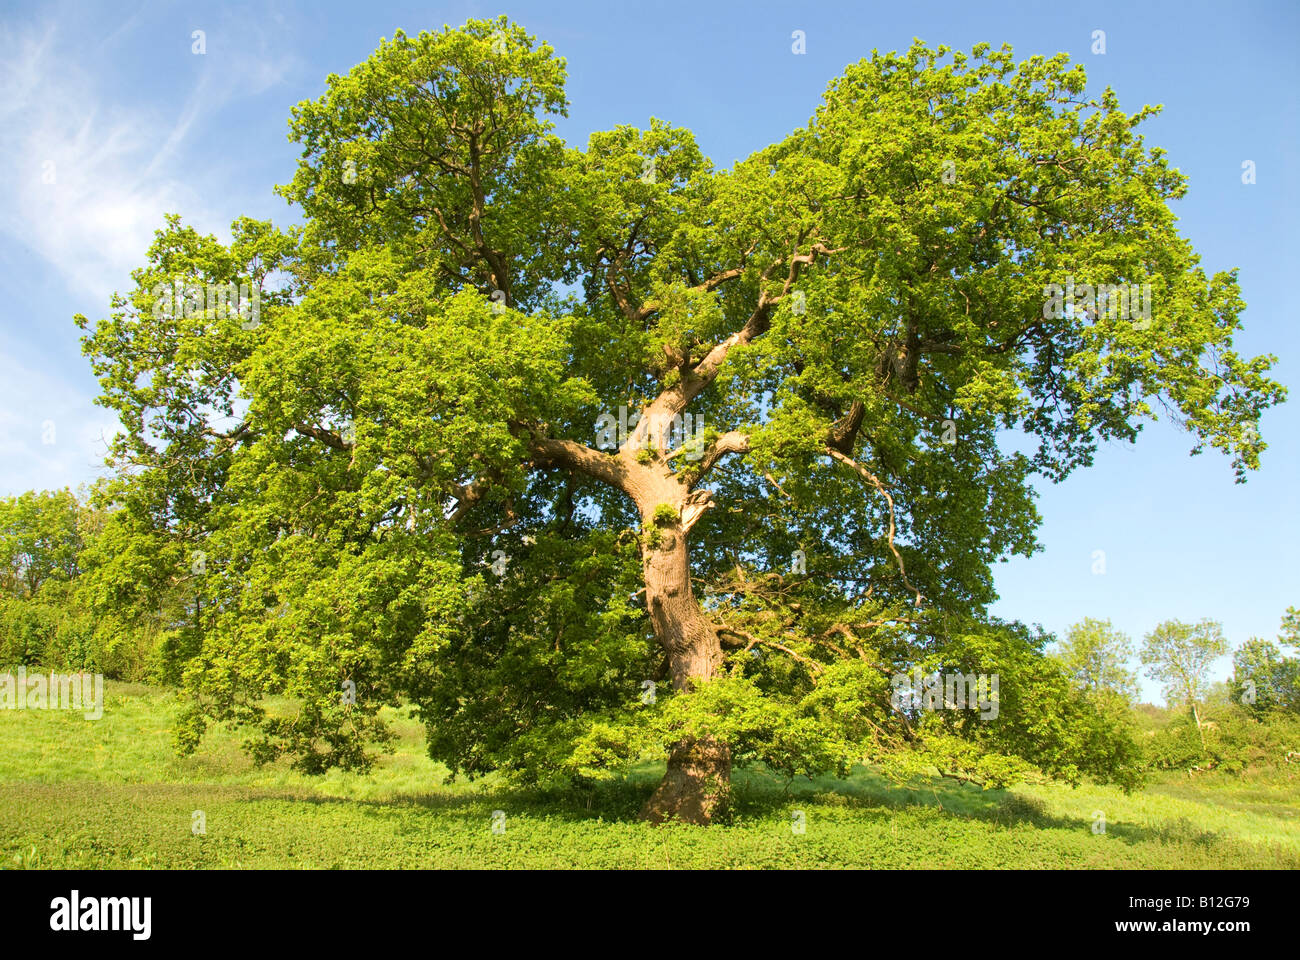 An oak tree in the English countryside - Stock Image